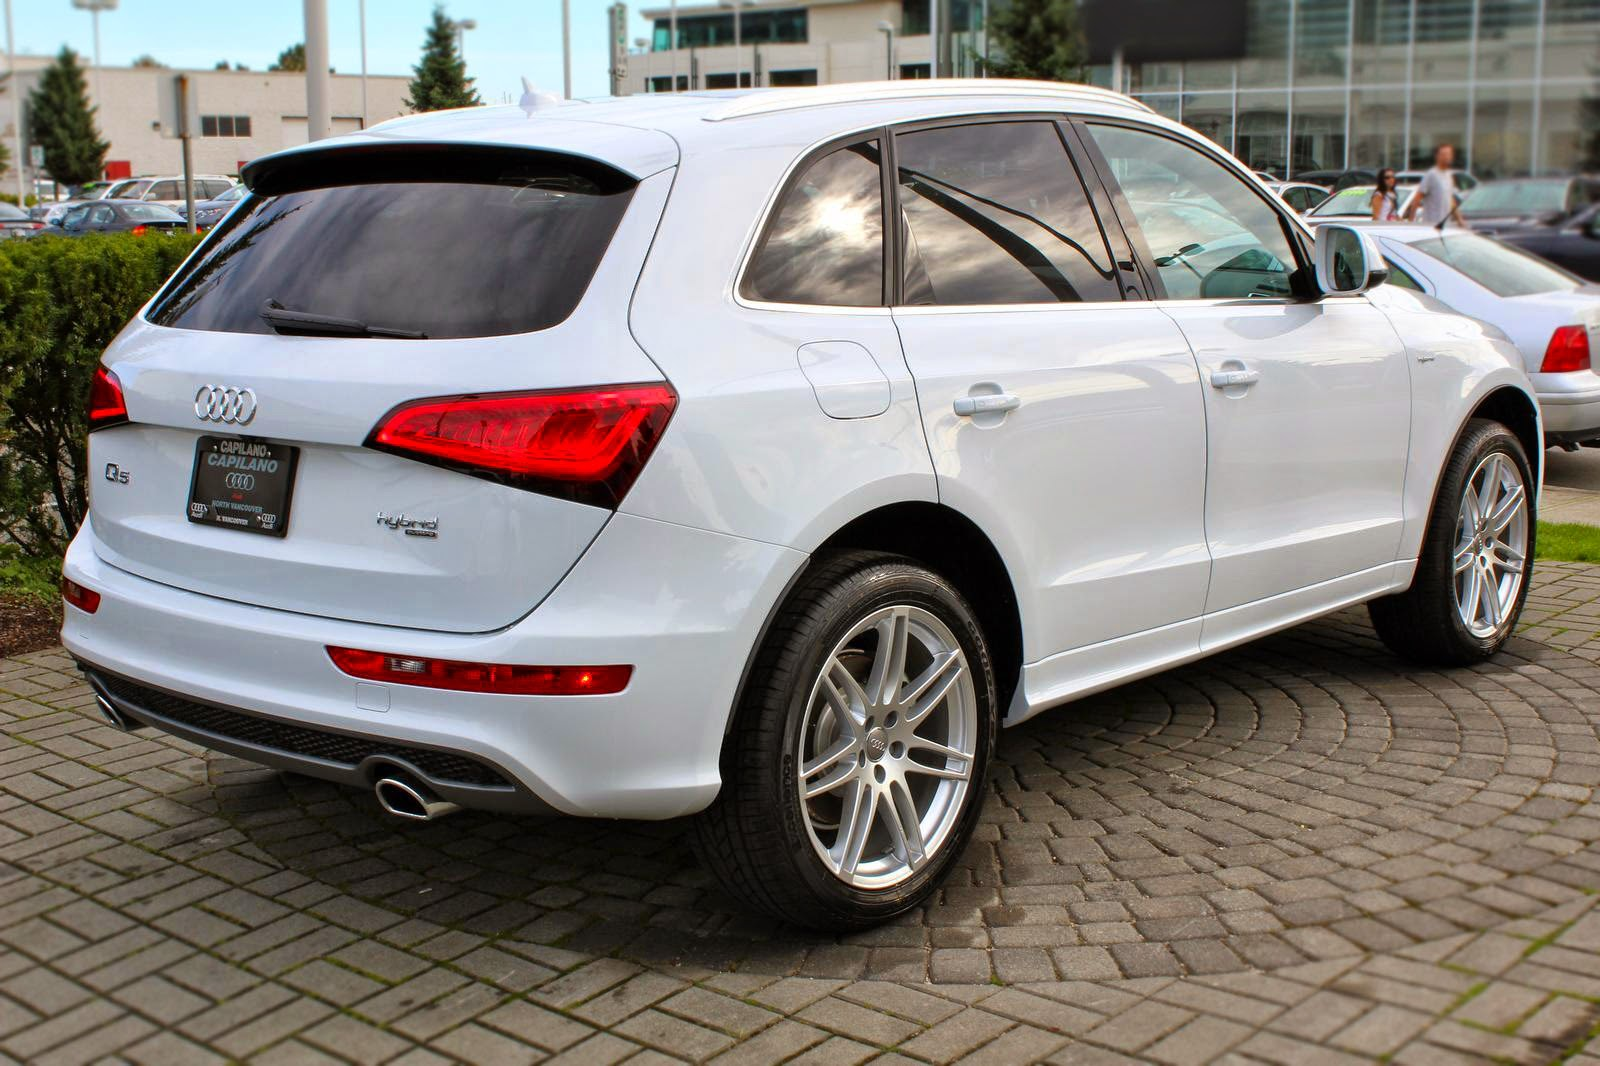 AUDI Q5 MOTORING: AUDI FINANCIAL SERVICE Q5 LEASE RATE FOR OCTOBER / NOVEMBER / DECEMBER 2014